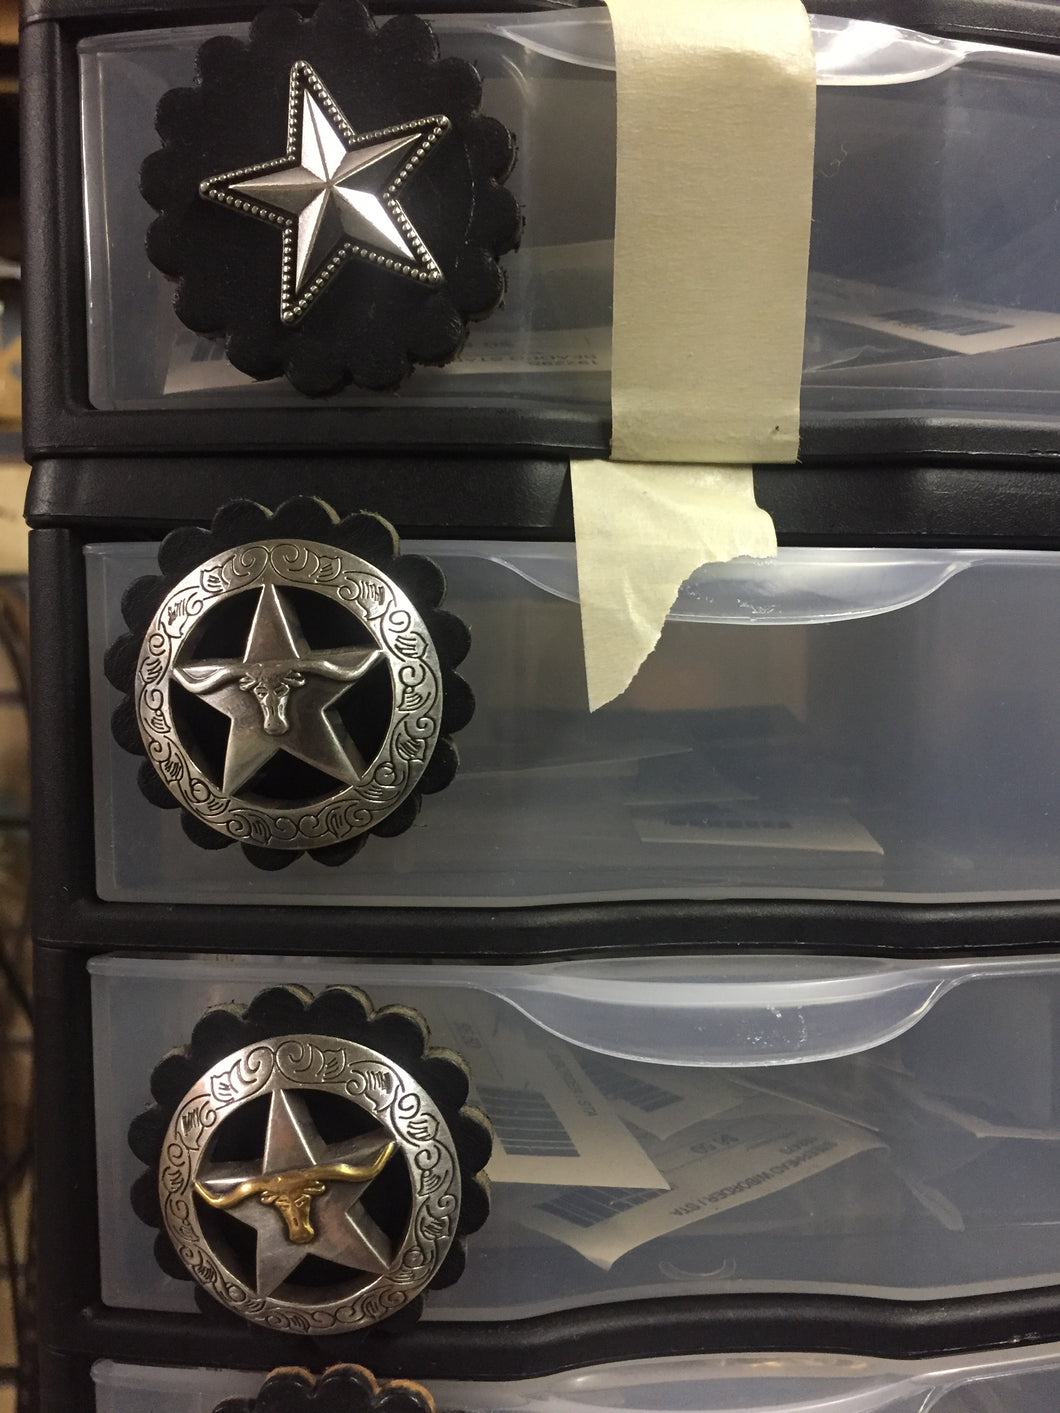 Anchor Brand - T.M. - Buckles and Conchos - Pic 7 Drawer 2